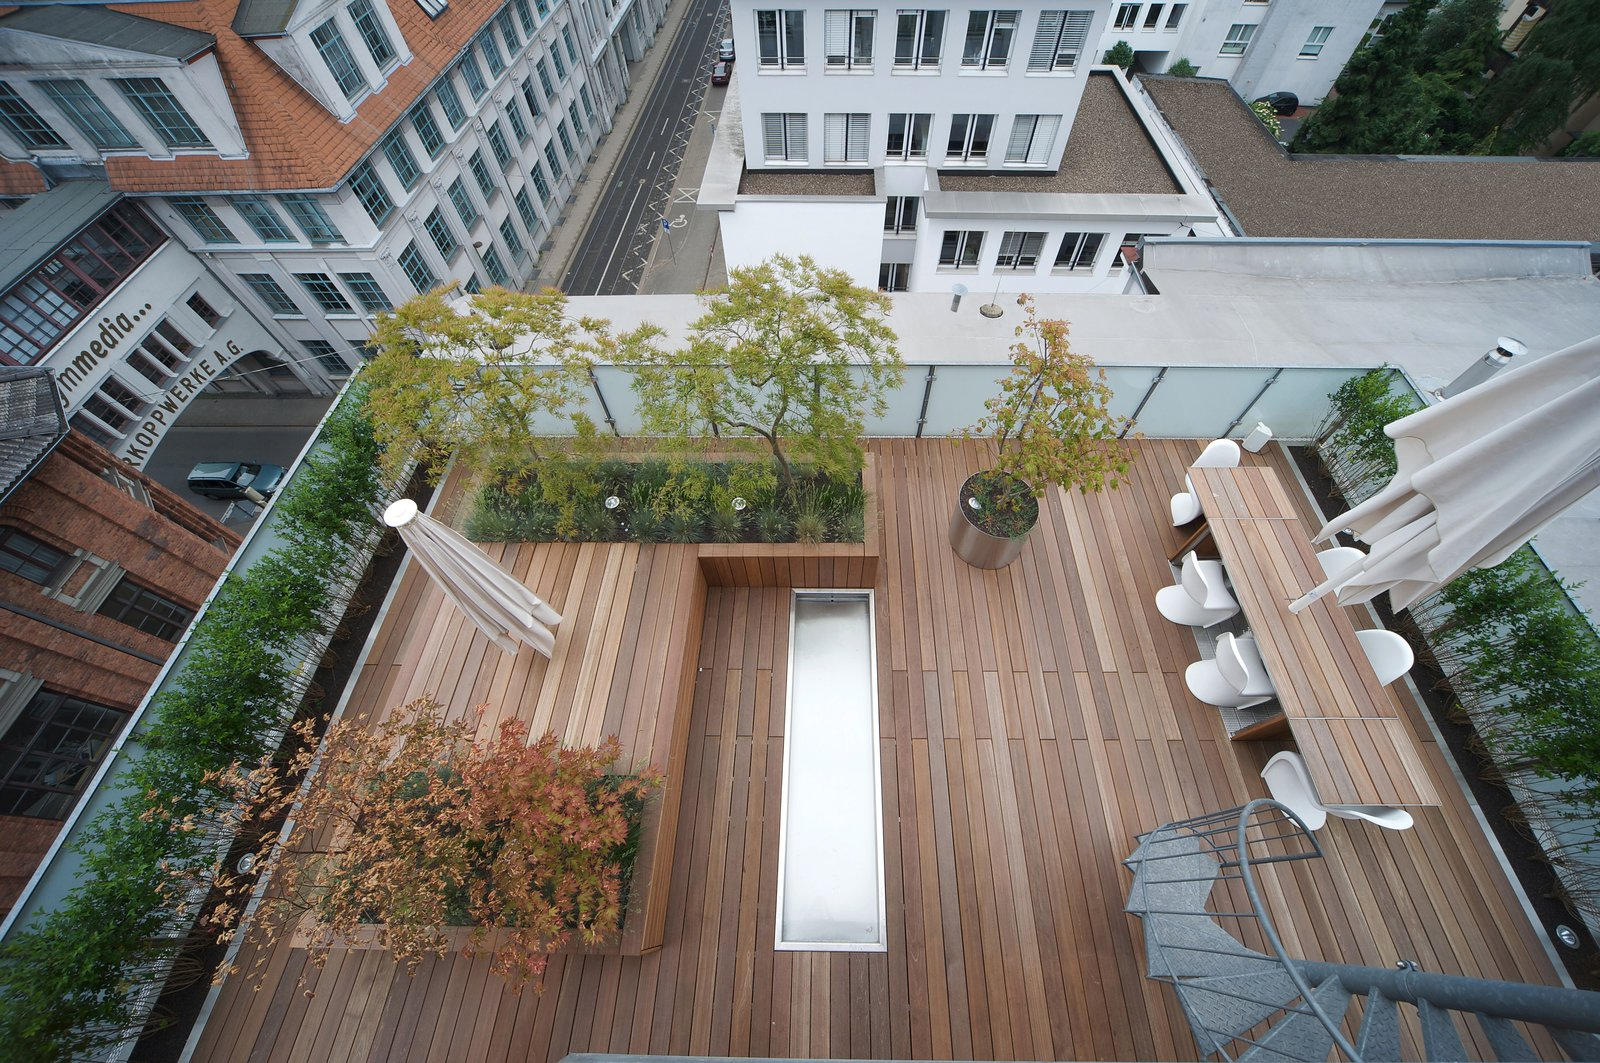 Outdoor, Garden, Rooftop, Trees, Shrubs, Gardens, Wood Patio, Porch, Deck, Landscape Lighting, and Grass  Penthouse Apartment in Bielefeld